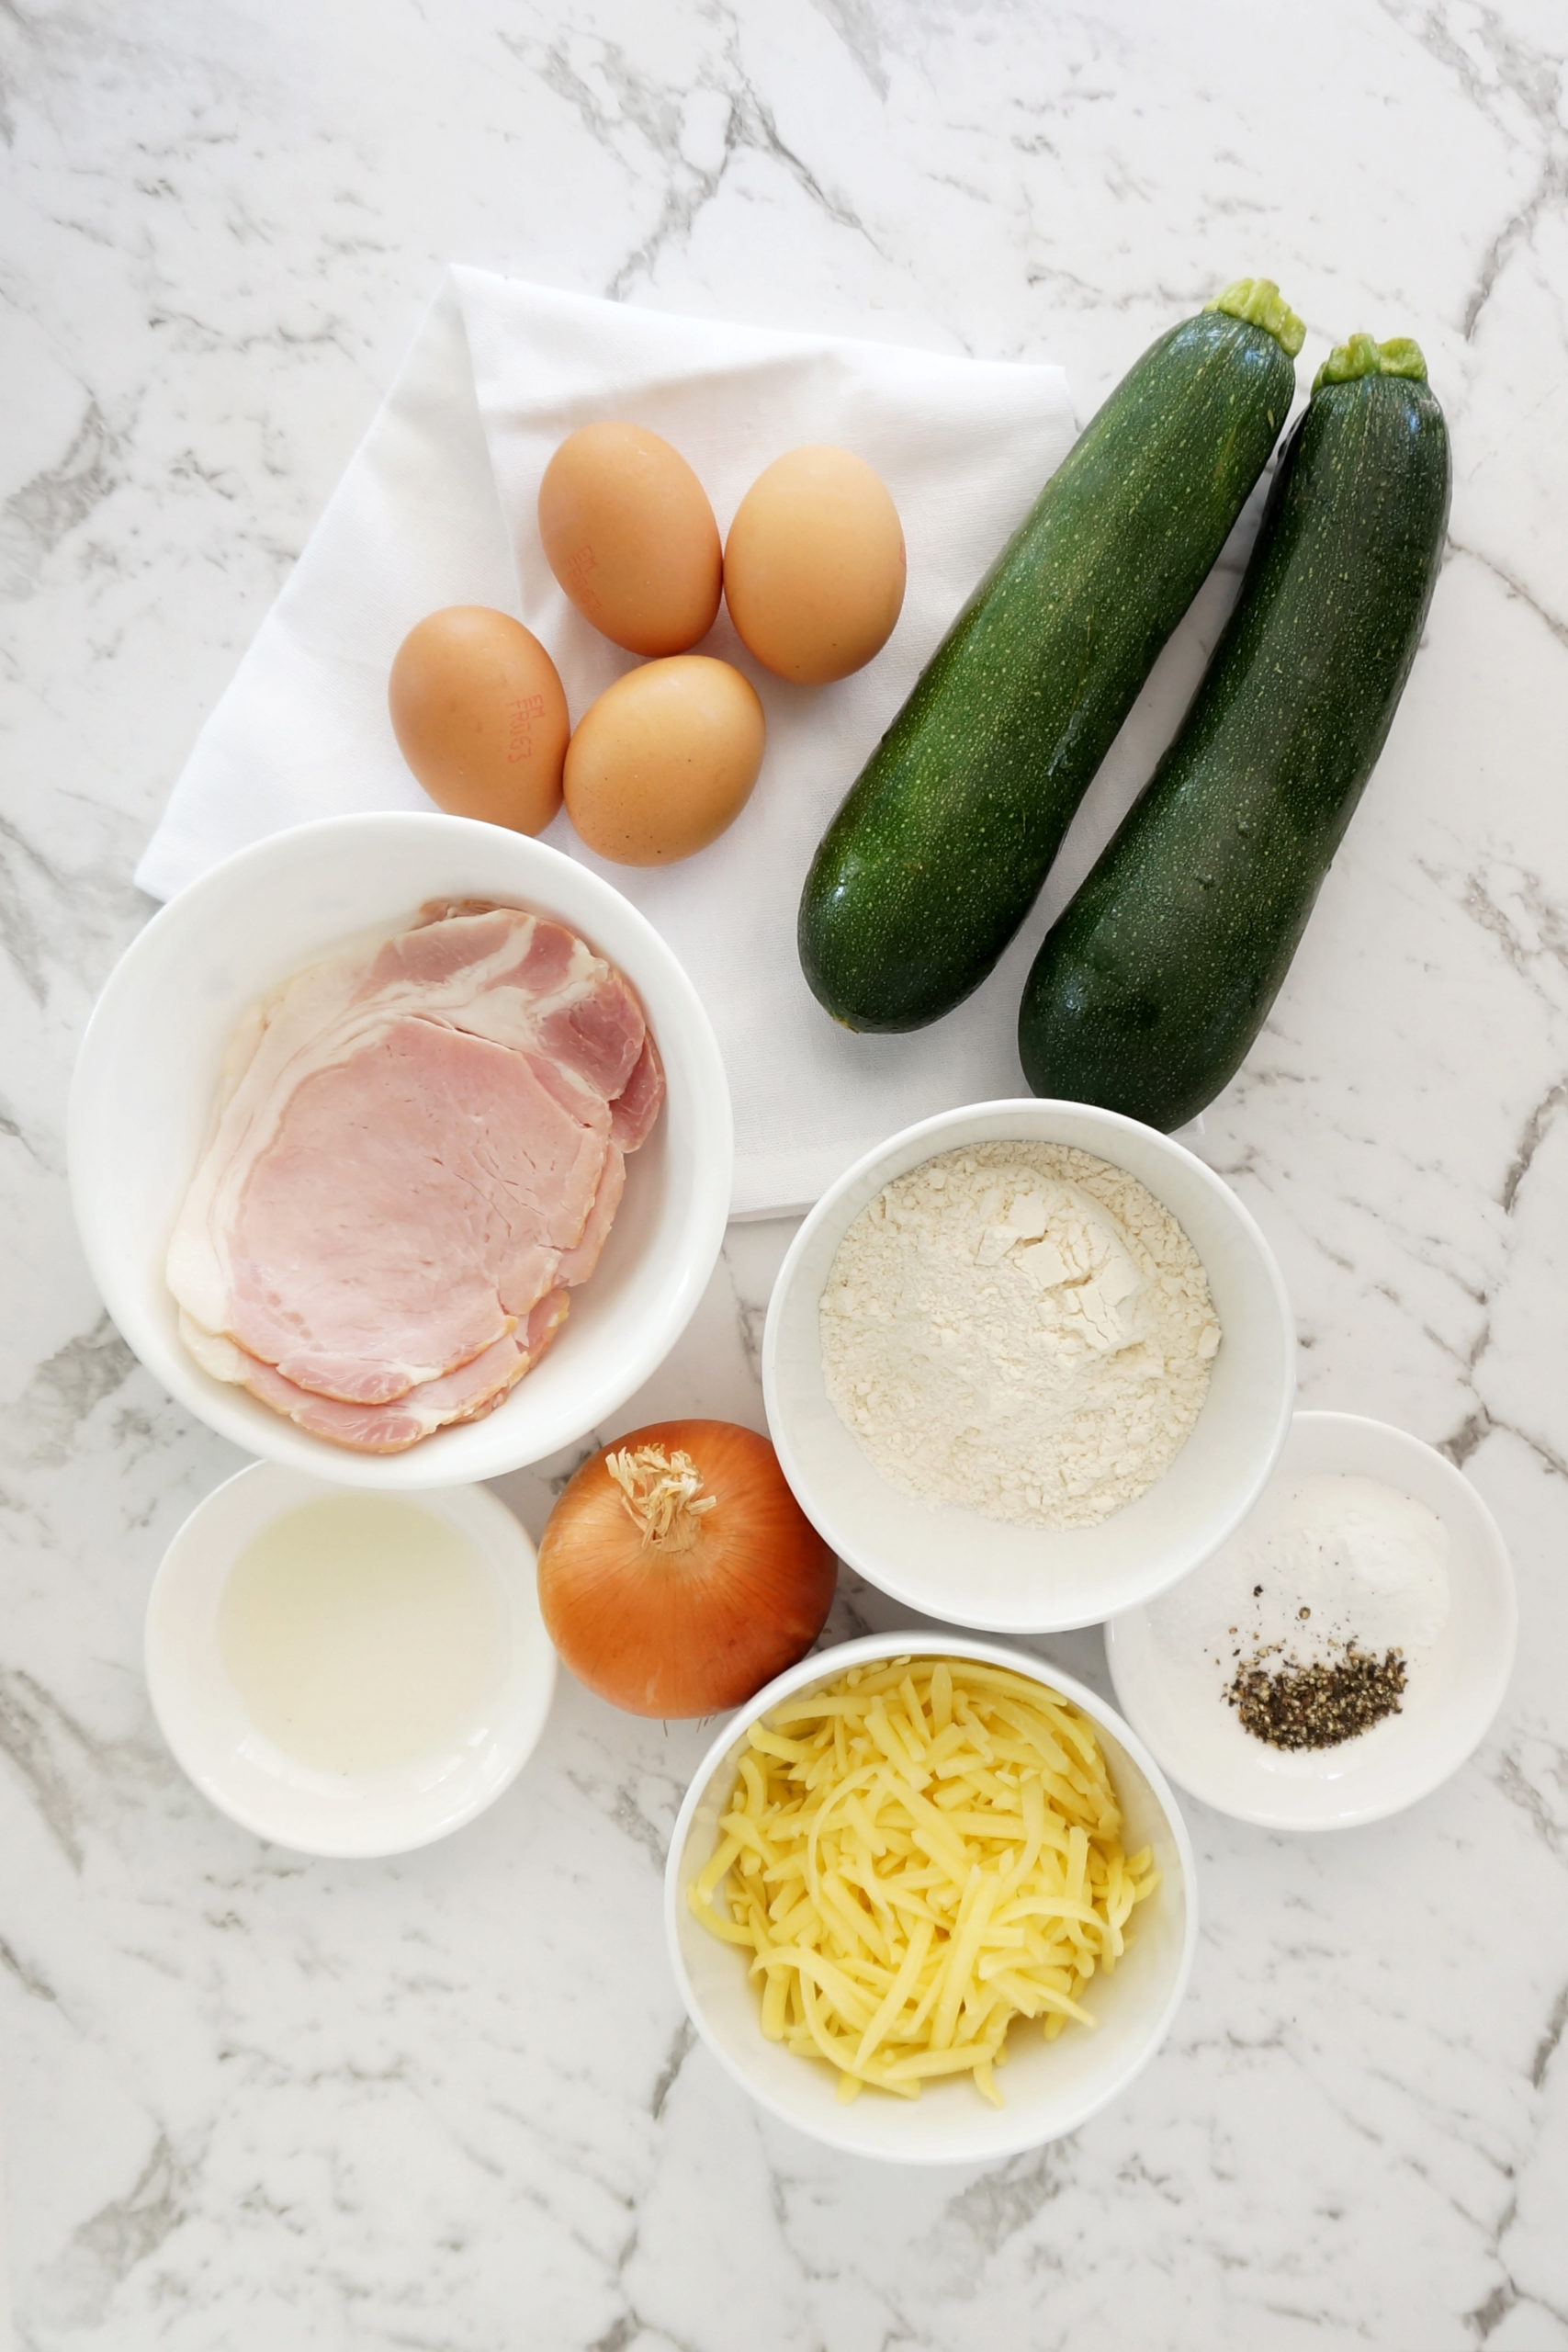 ingredients - eggs, zucchini, bacon, flour, baking powder, onion, oil, cheese, salt and pepper